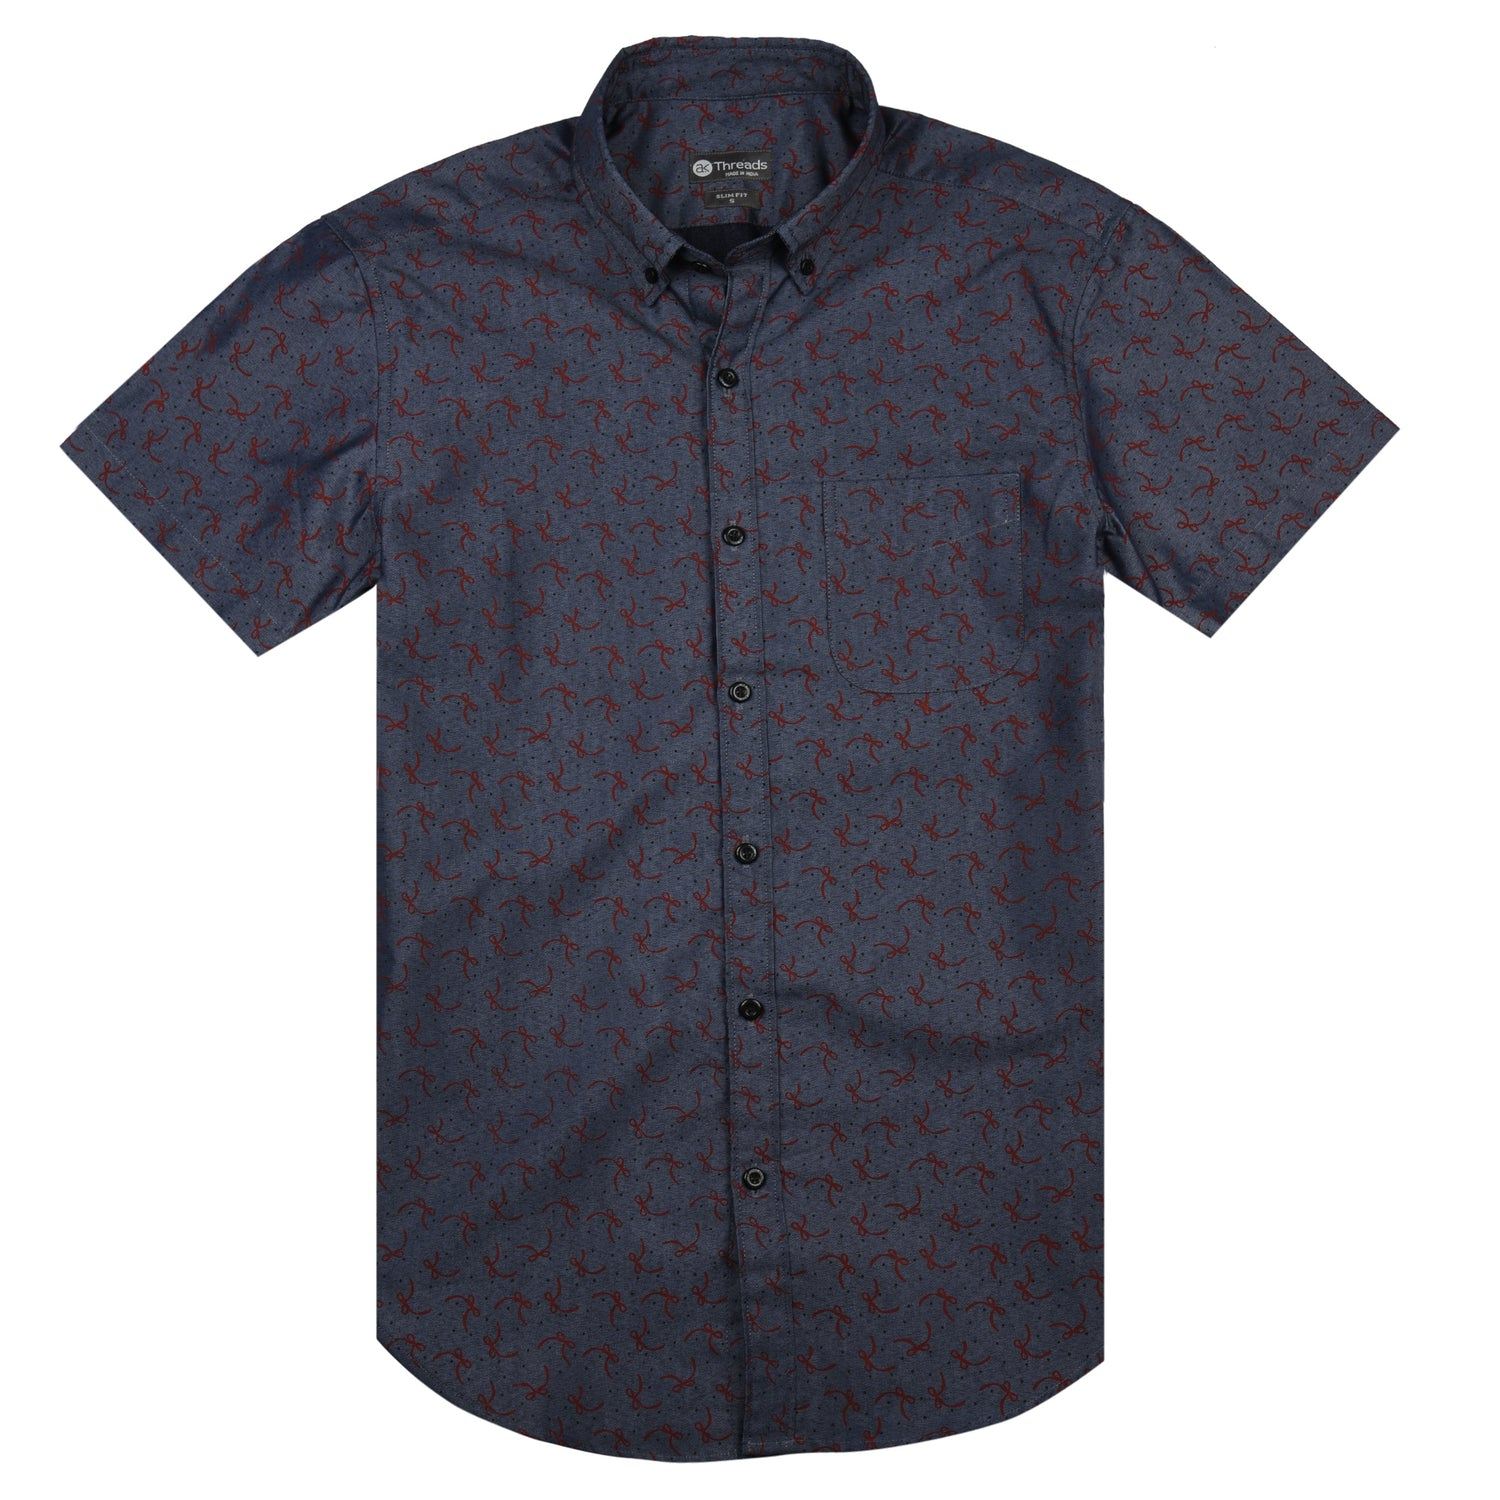 Ribbon Print Short Sleeve Shirt